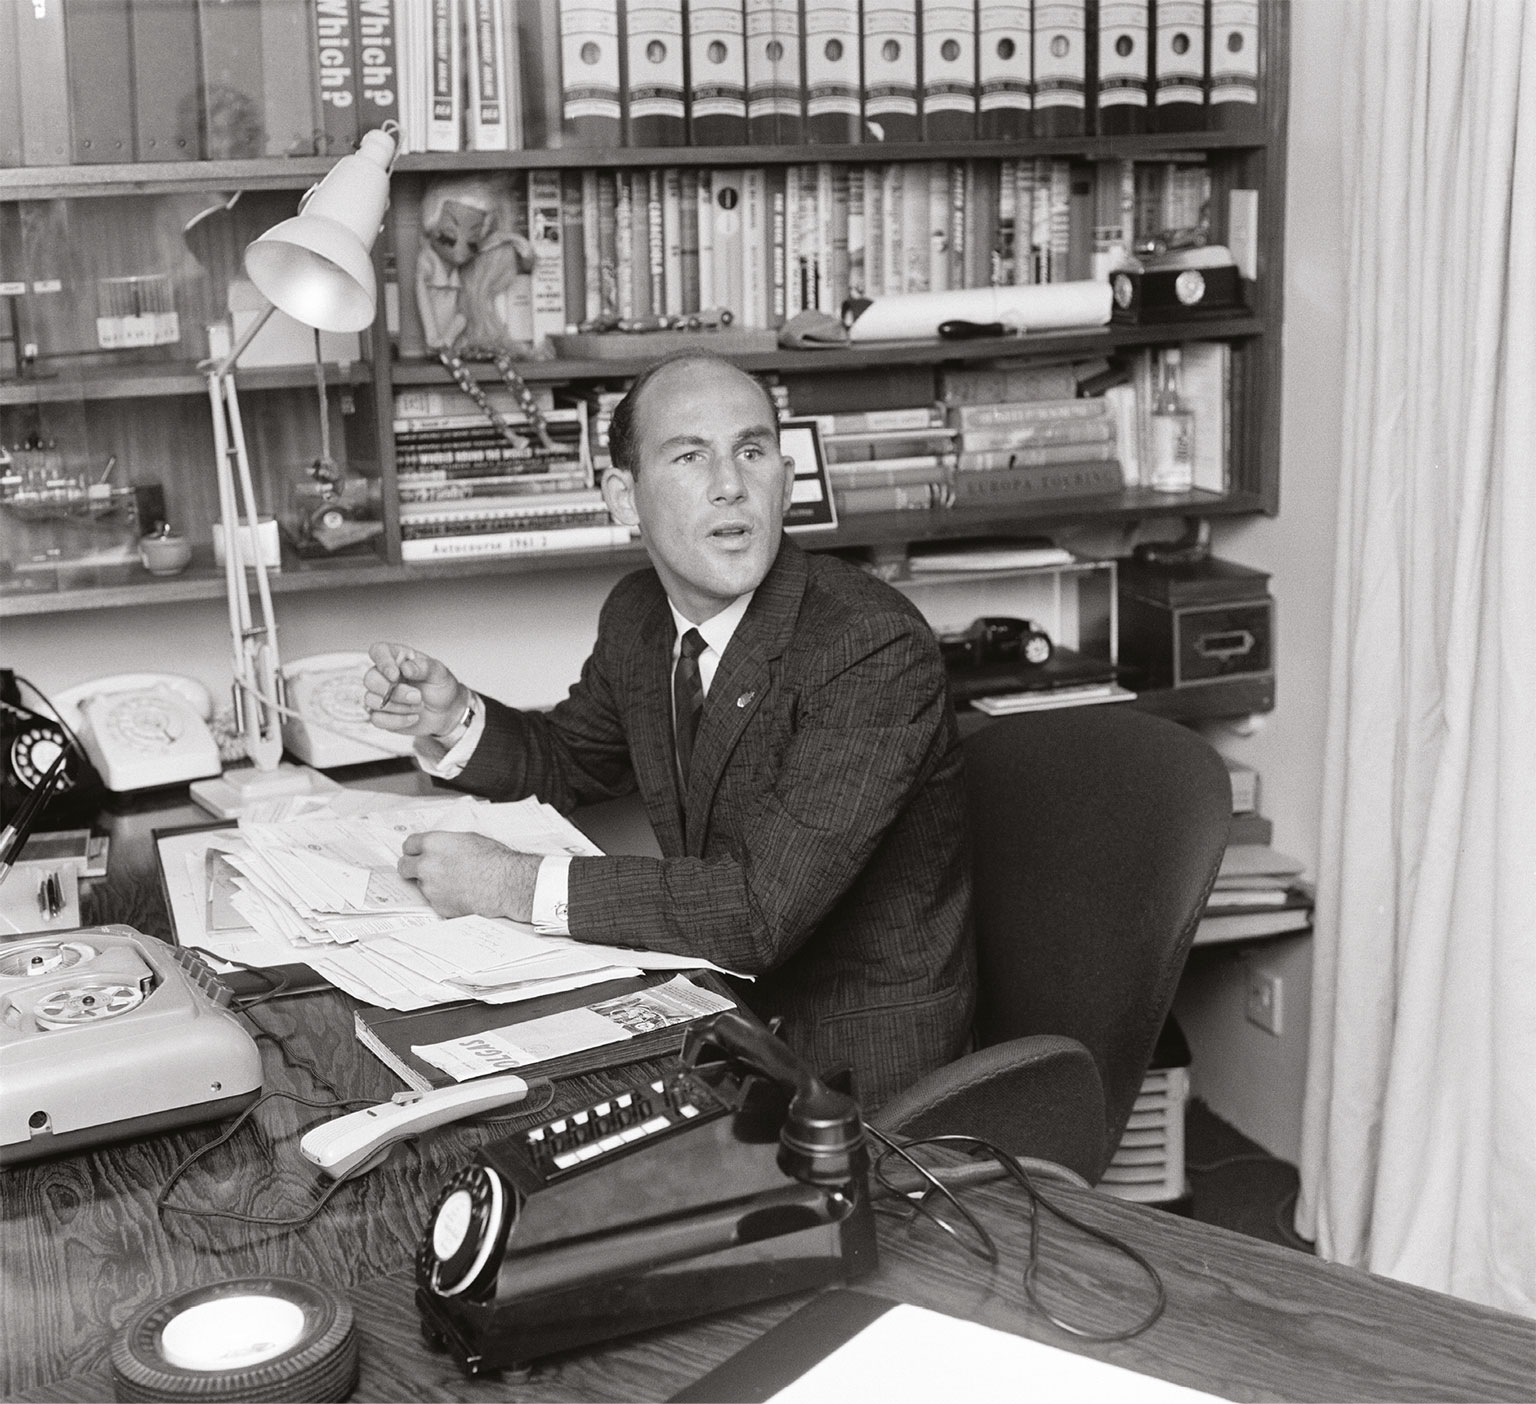 Dictaphone, lamps and phones galore… Stirling loved gadgets and his new house had to be crammed with them